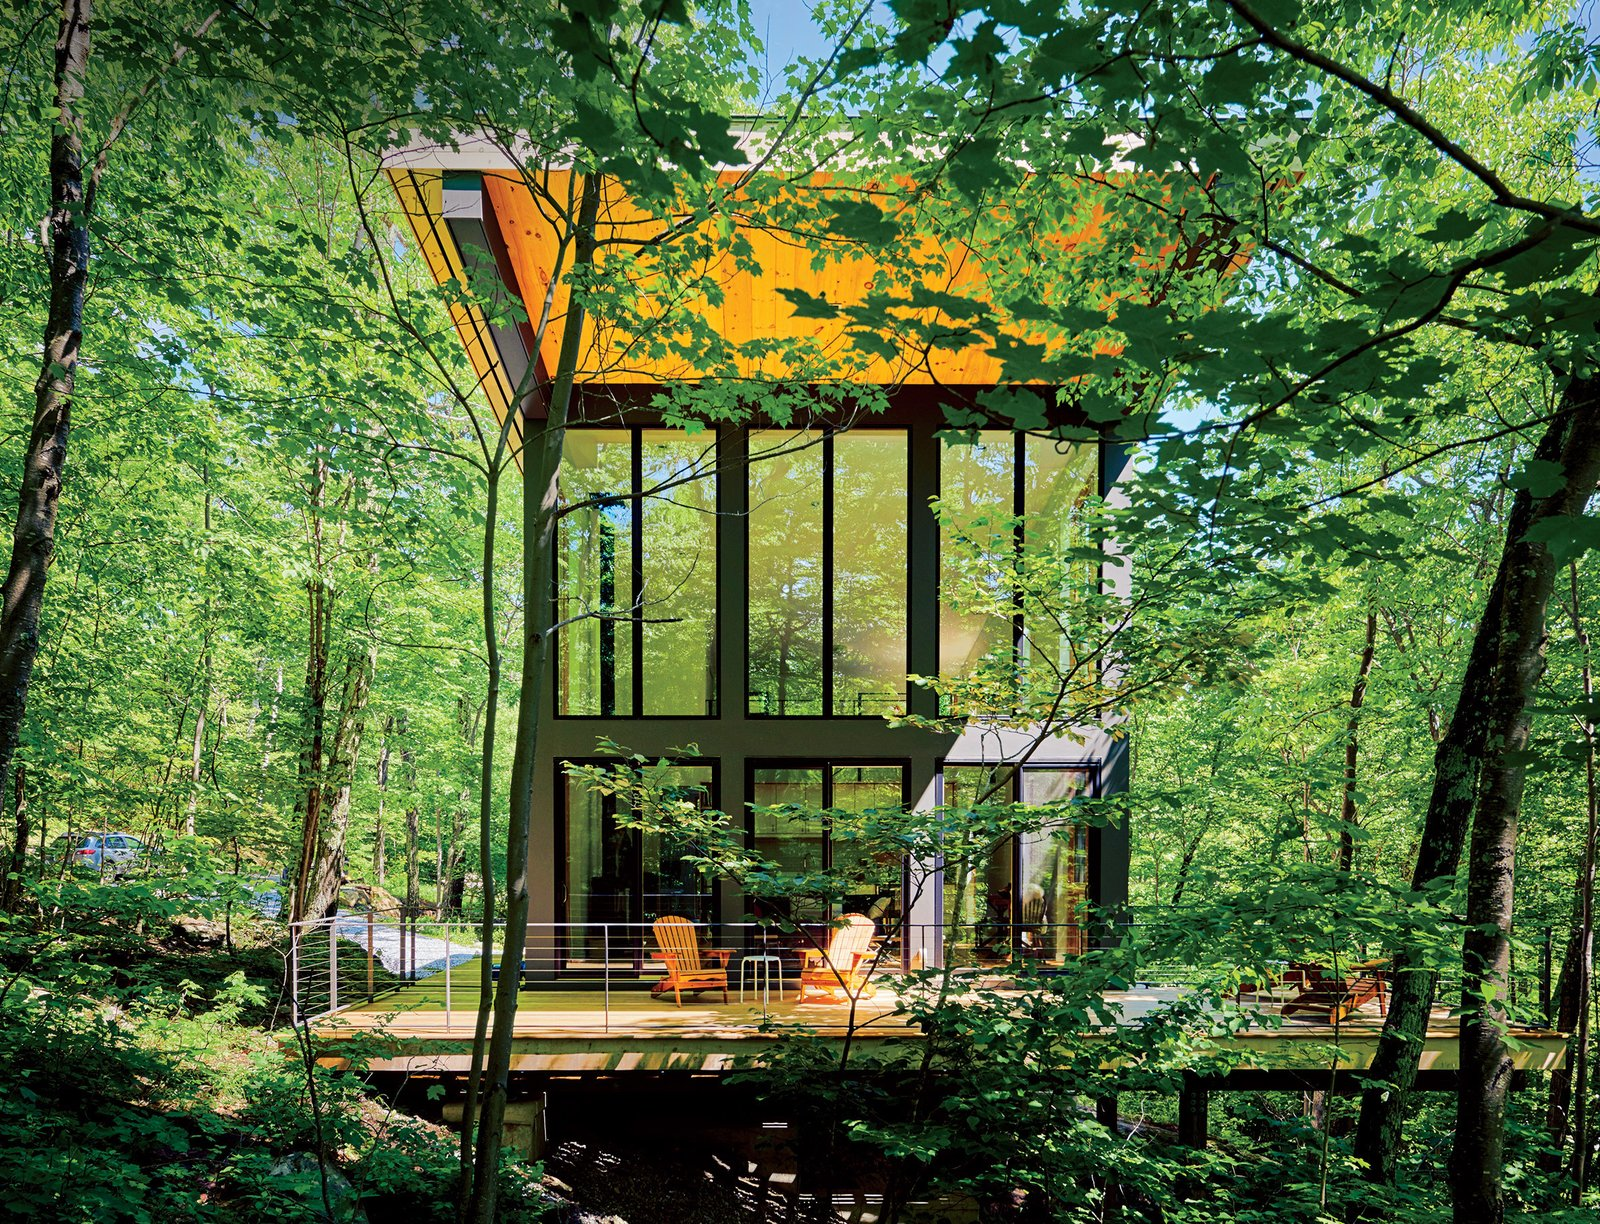 "A cantilevered cabin designed by R D Gentzler blends into the forest, even as it hovers above a 20-foot drop-off. Its south face is almost entirely glass, but a roof canopy limits solar gain. ""We sit on the deck all afternoon watching the trees, and the time just flies by,"" says resident Maricela Salas. Tagged: Exterior and House.  Modern, Off-the-Grid Homes by Aileen Kwun from A Little Cabin Reaches Such Great Heights"